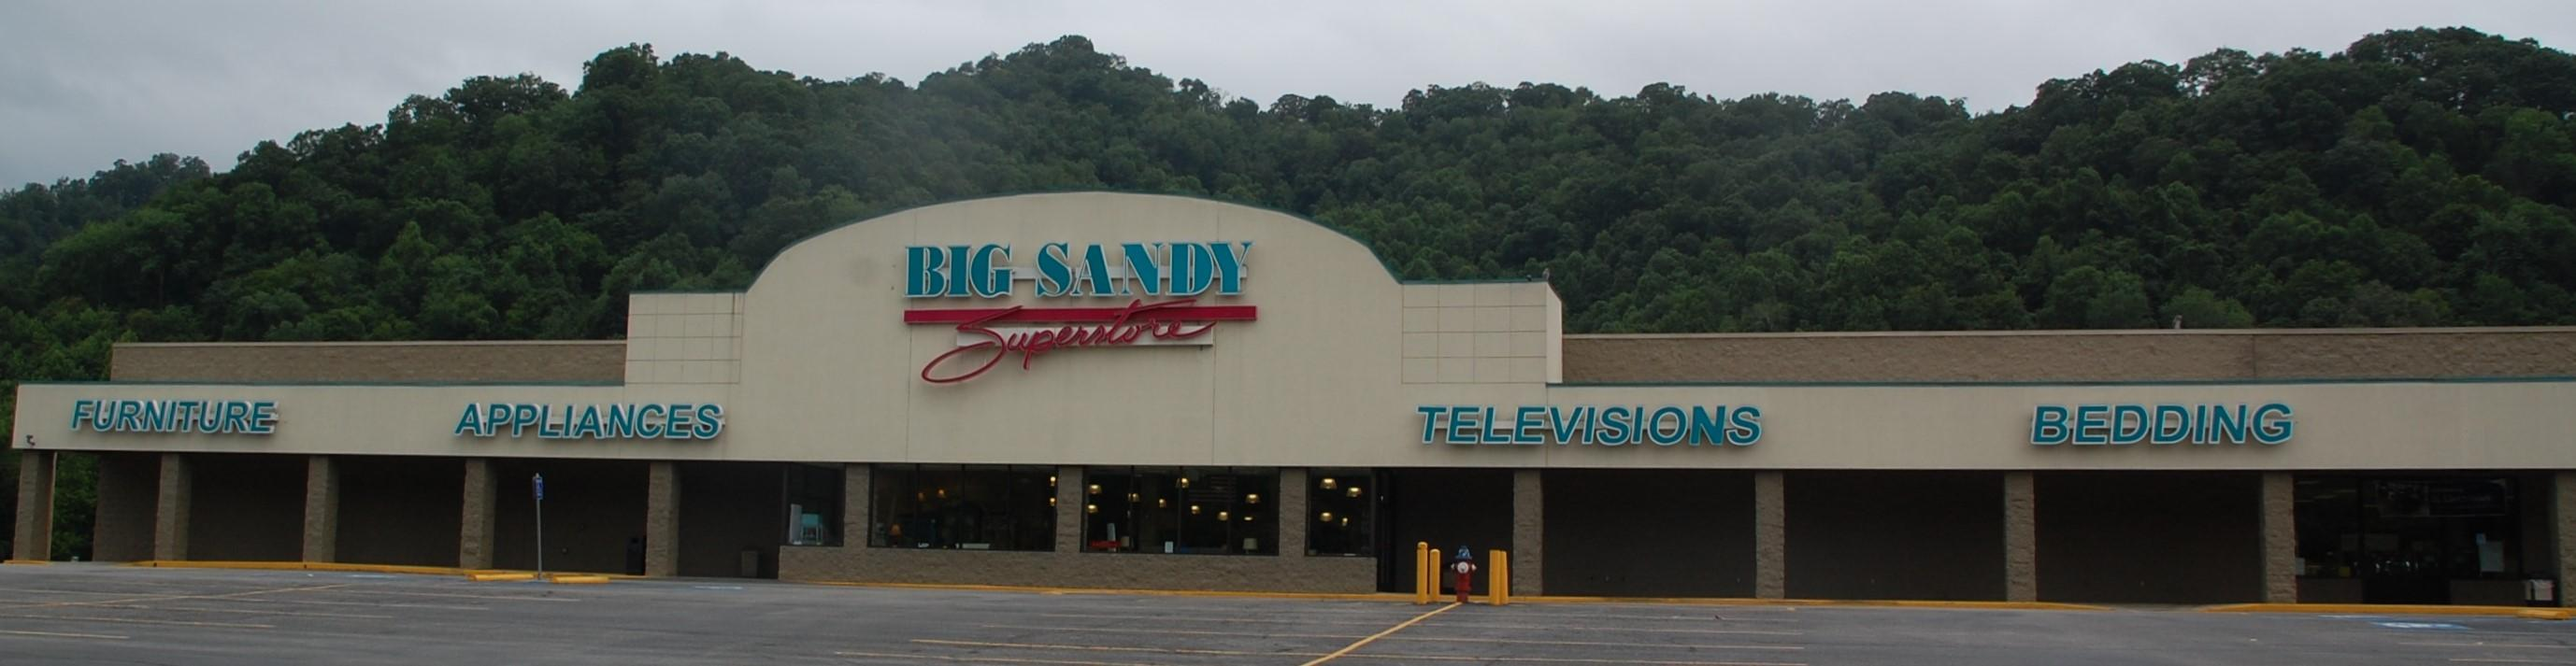 Big Sandy Superstore 14 North Mayo Trail Pikeville, KY